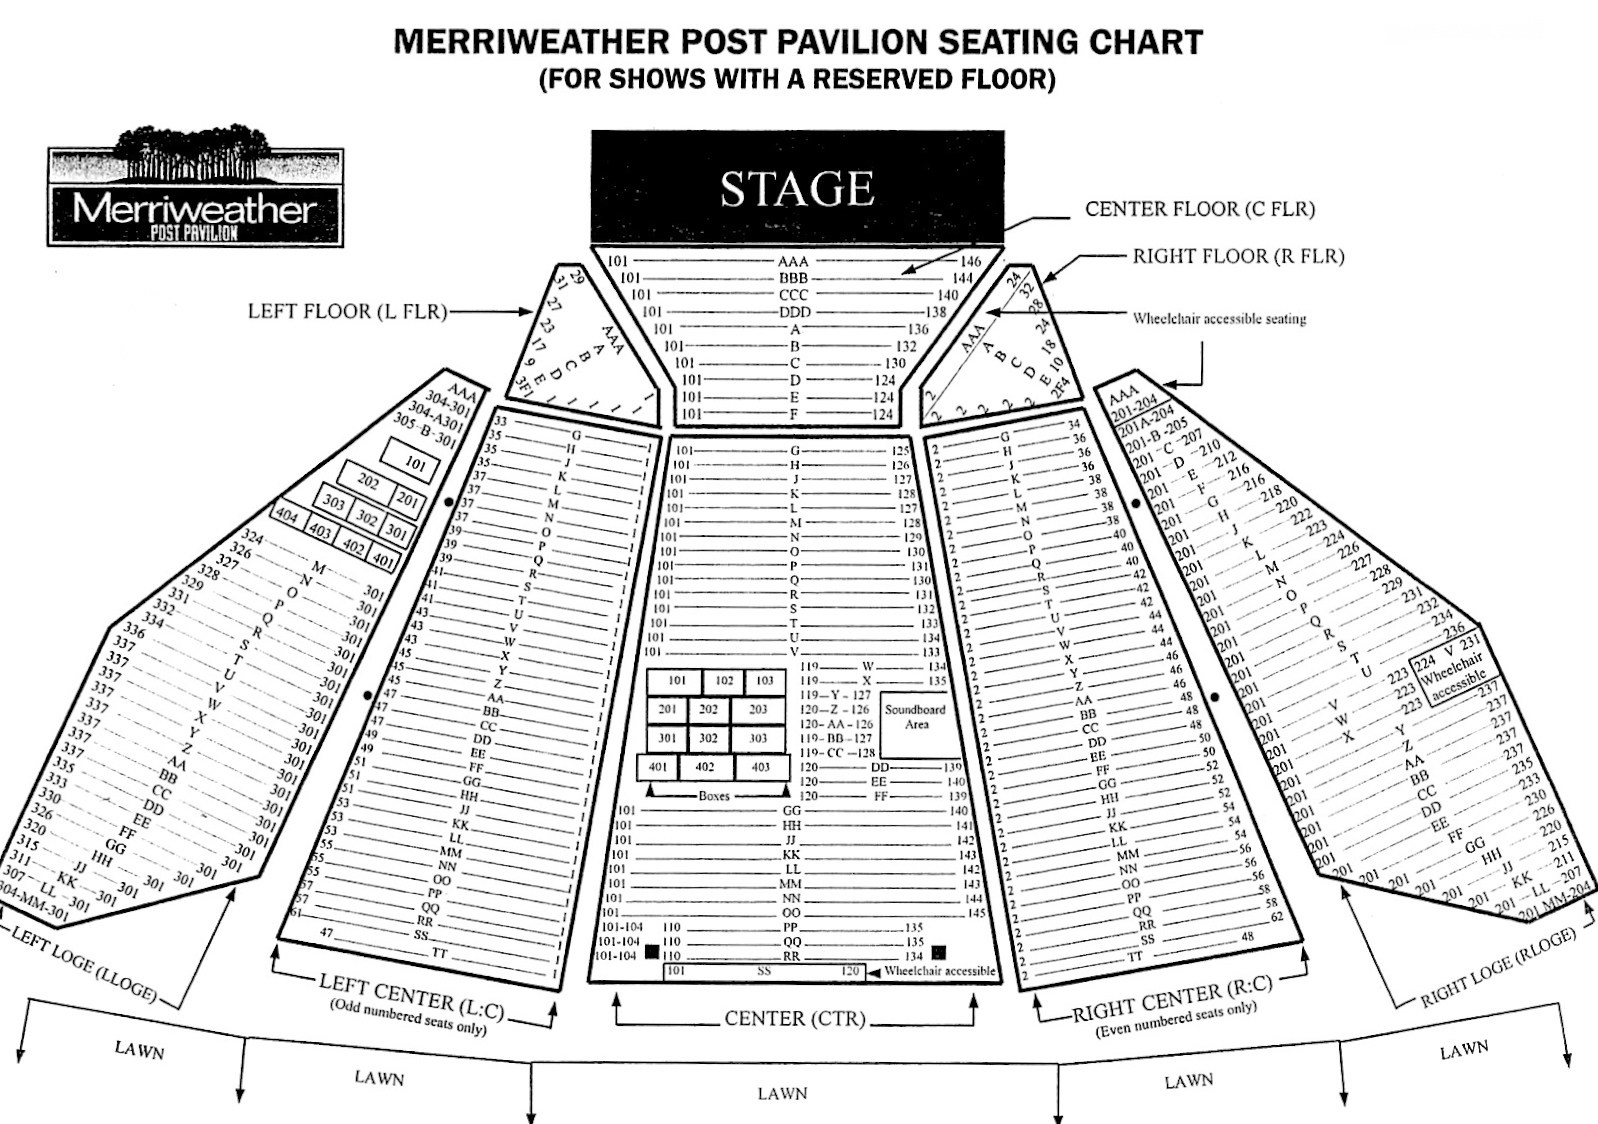 merriweather post pavilion seating chart - Merriweather Post Pavilion Seating Chart & Interactive Seat Map